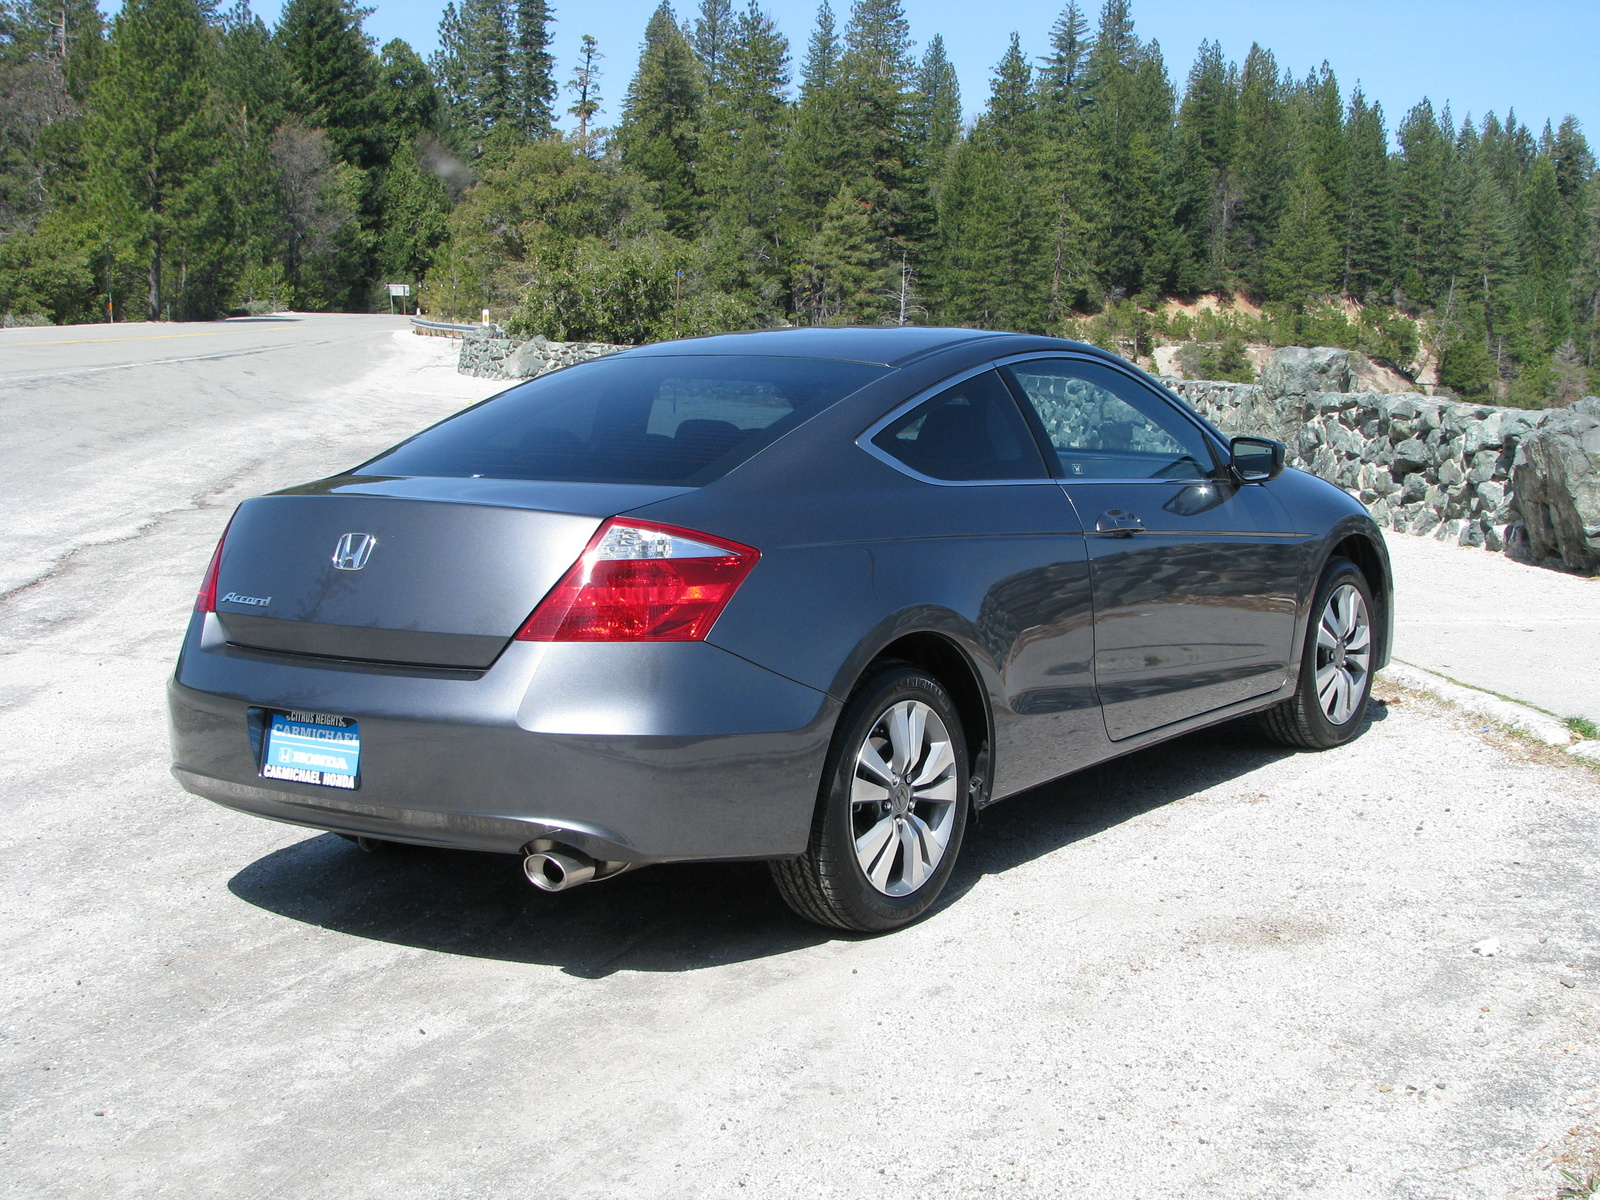 2010 honda accord coupe pictures cargurus. Black Bedroom Furniture Sets. Home Design Ideas